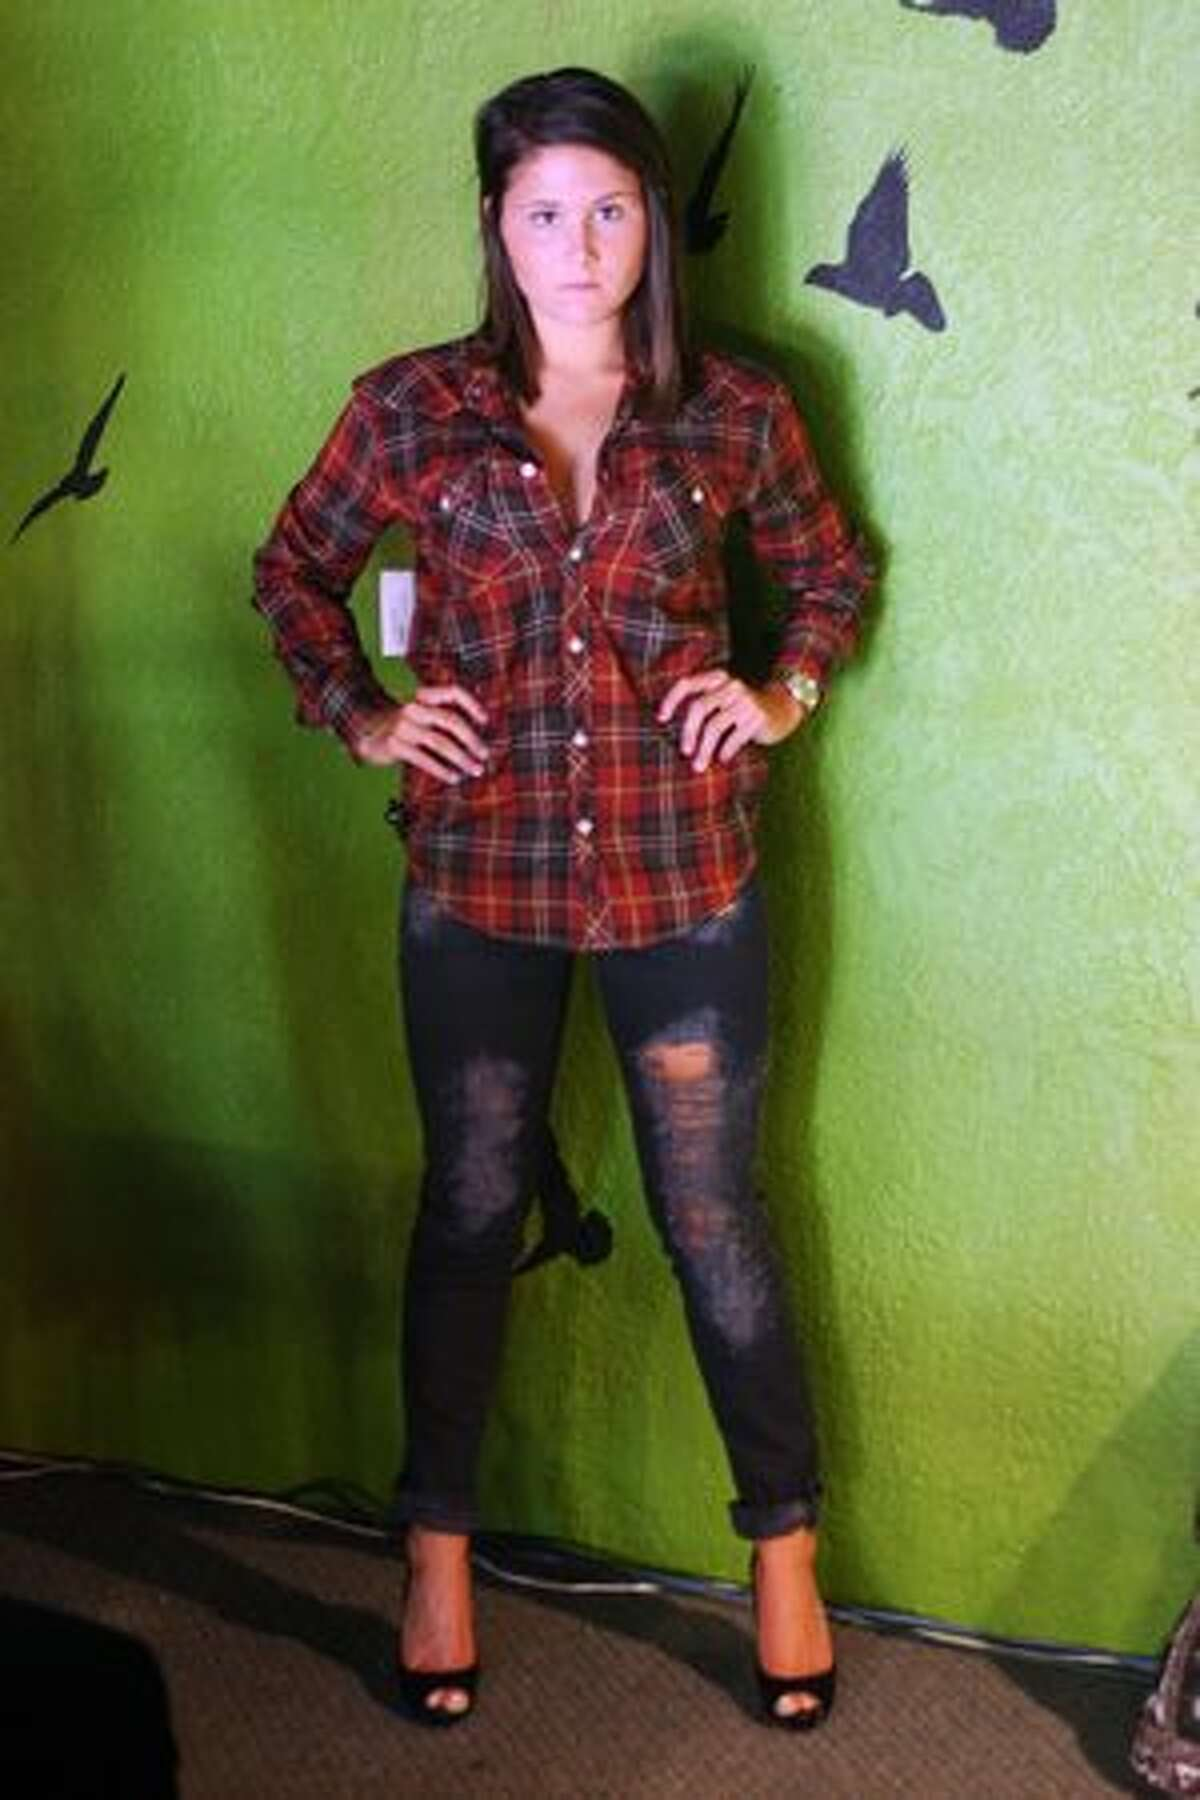 Alexus Sheft, sister of the owner Brittany Shefts, models a modern farmgirl look.